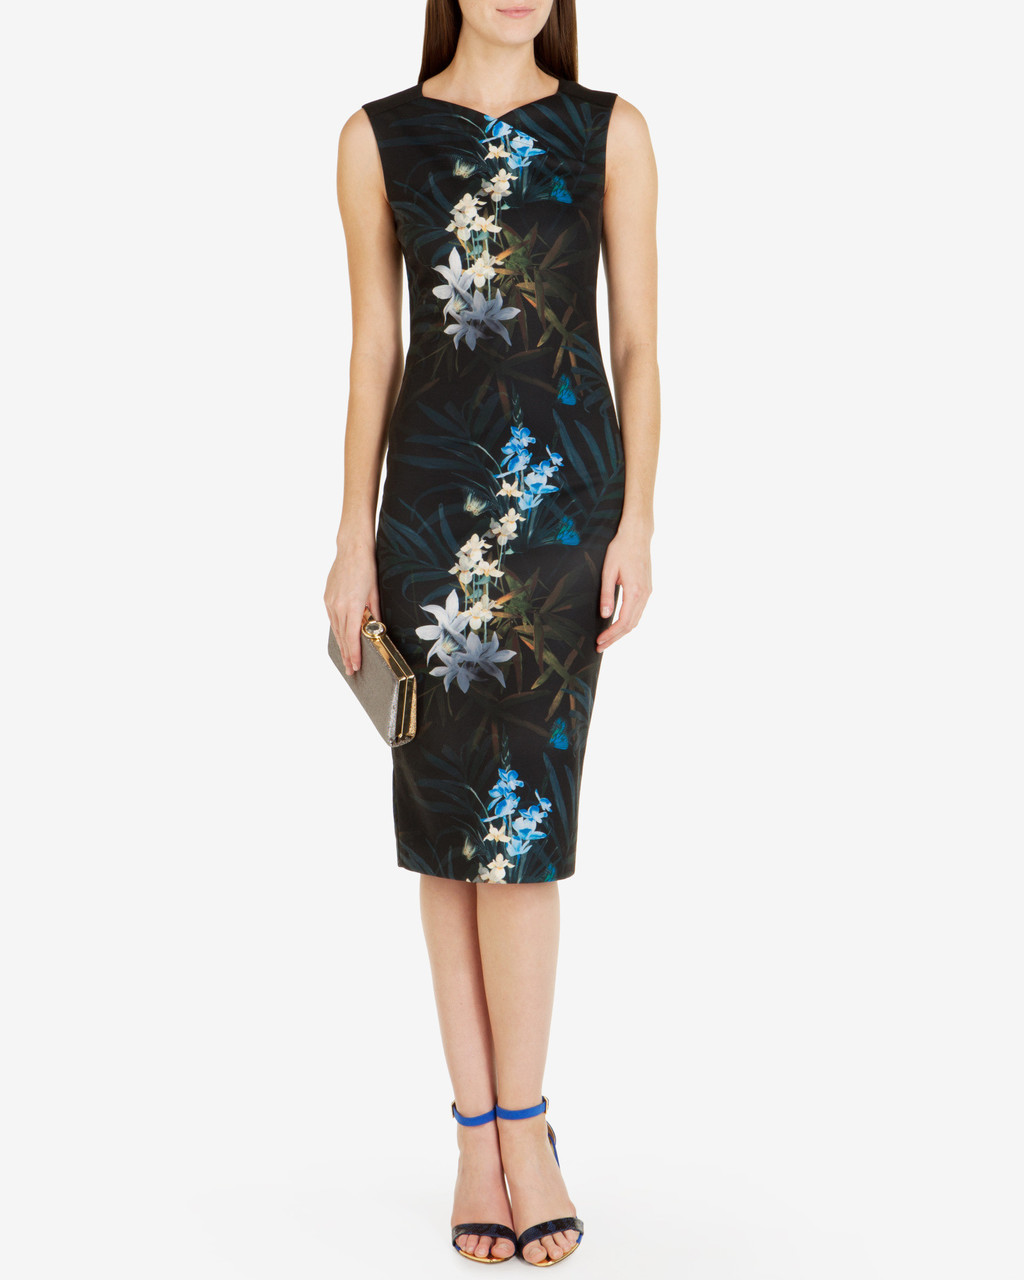 Twilight Floral Midi Dress Black - length: below the knee; fit: tight; sleeve style: sleeveless; style: bodycon; secondary colour: diva blue; predominant colour: black; occasions: evening; fibres: polyester/polyamide - stretch; neckline: crew; sleeve length: sleeveless; texture group: jersey - clingy; pattern type: fabric; pattern: florals; multicoloured: multicoloured; season: a/w 2016; wardrobe: event